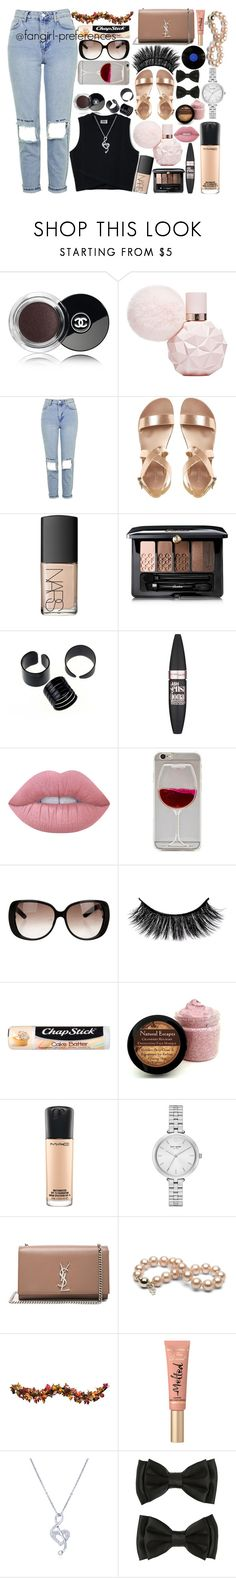 """""""#OOTD"""" by fangirl-preferences ❤ liked on Polyvore featuring Chanel, Topshop, NARS Cosmetics, Guerlain, Maybelline, Lime Crime, Wet Seal, Gucci, Chapstick and MAC Cosmetics"""